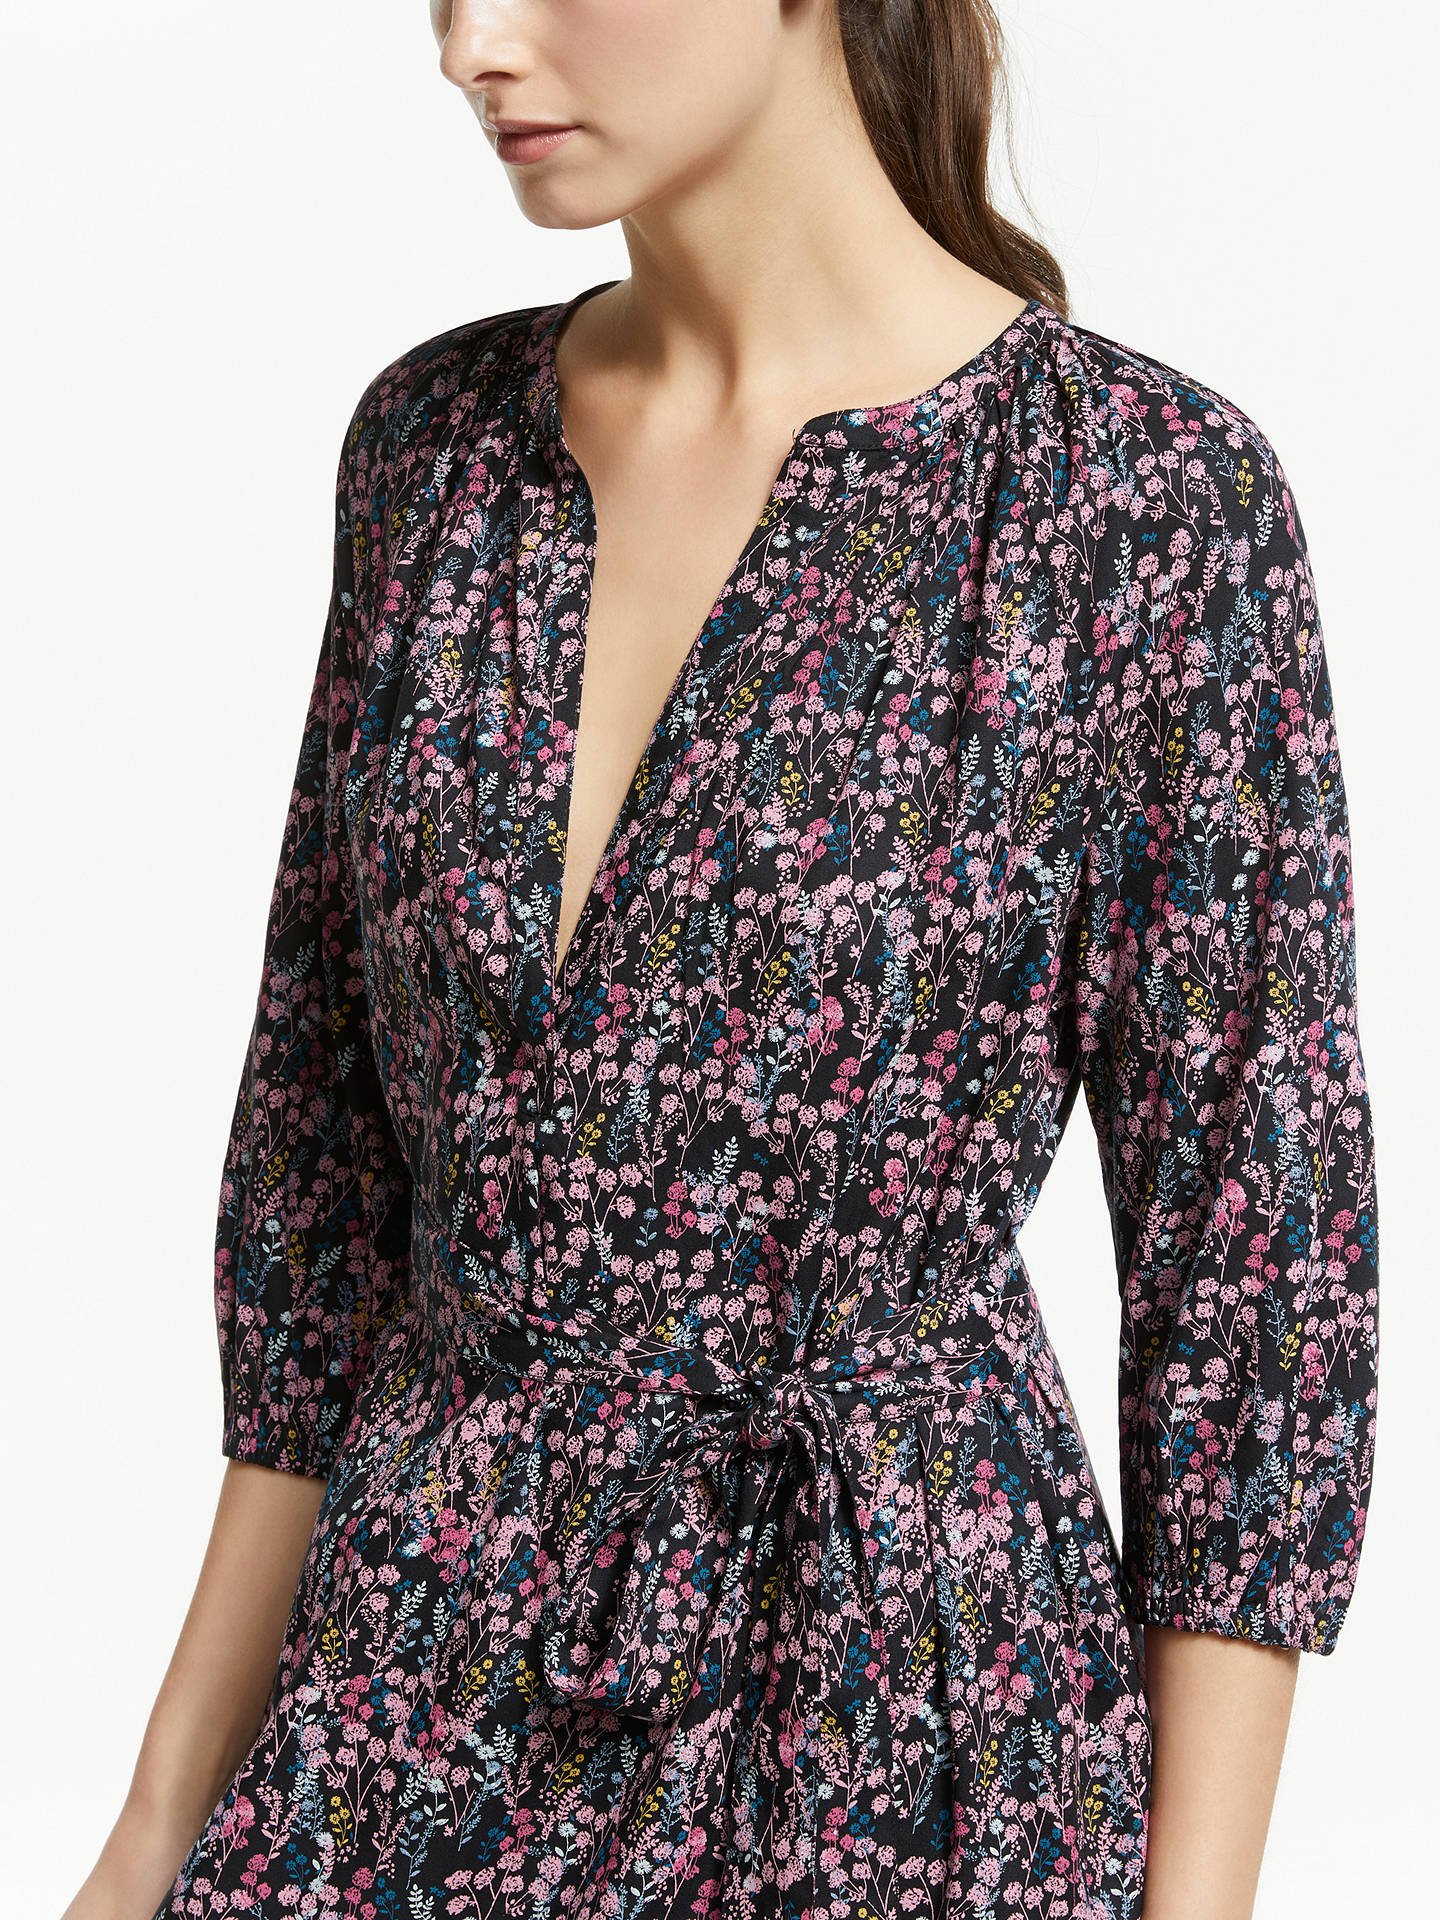 BuyCollection WEEKEND by John Lewis Dahlia Floral Smock Dress, Multi, 16 Online at johnlewis.com